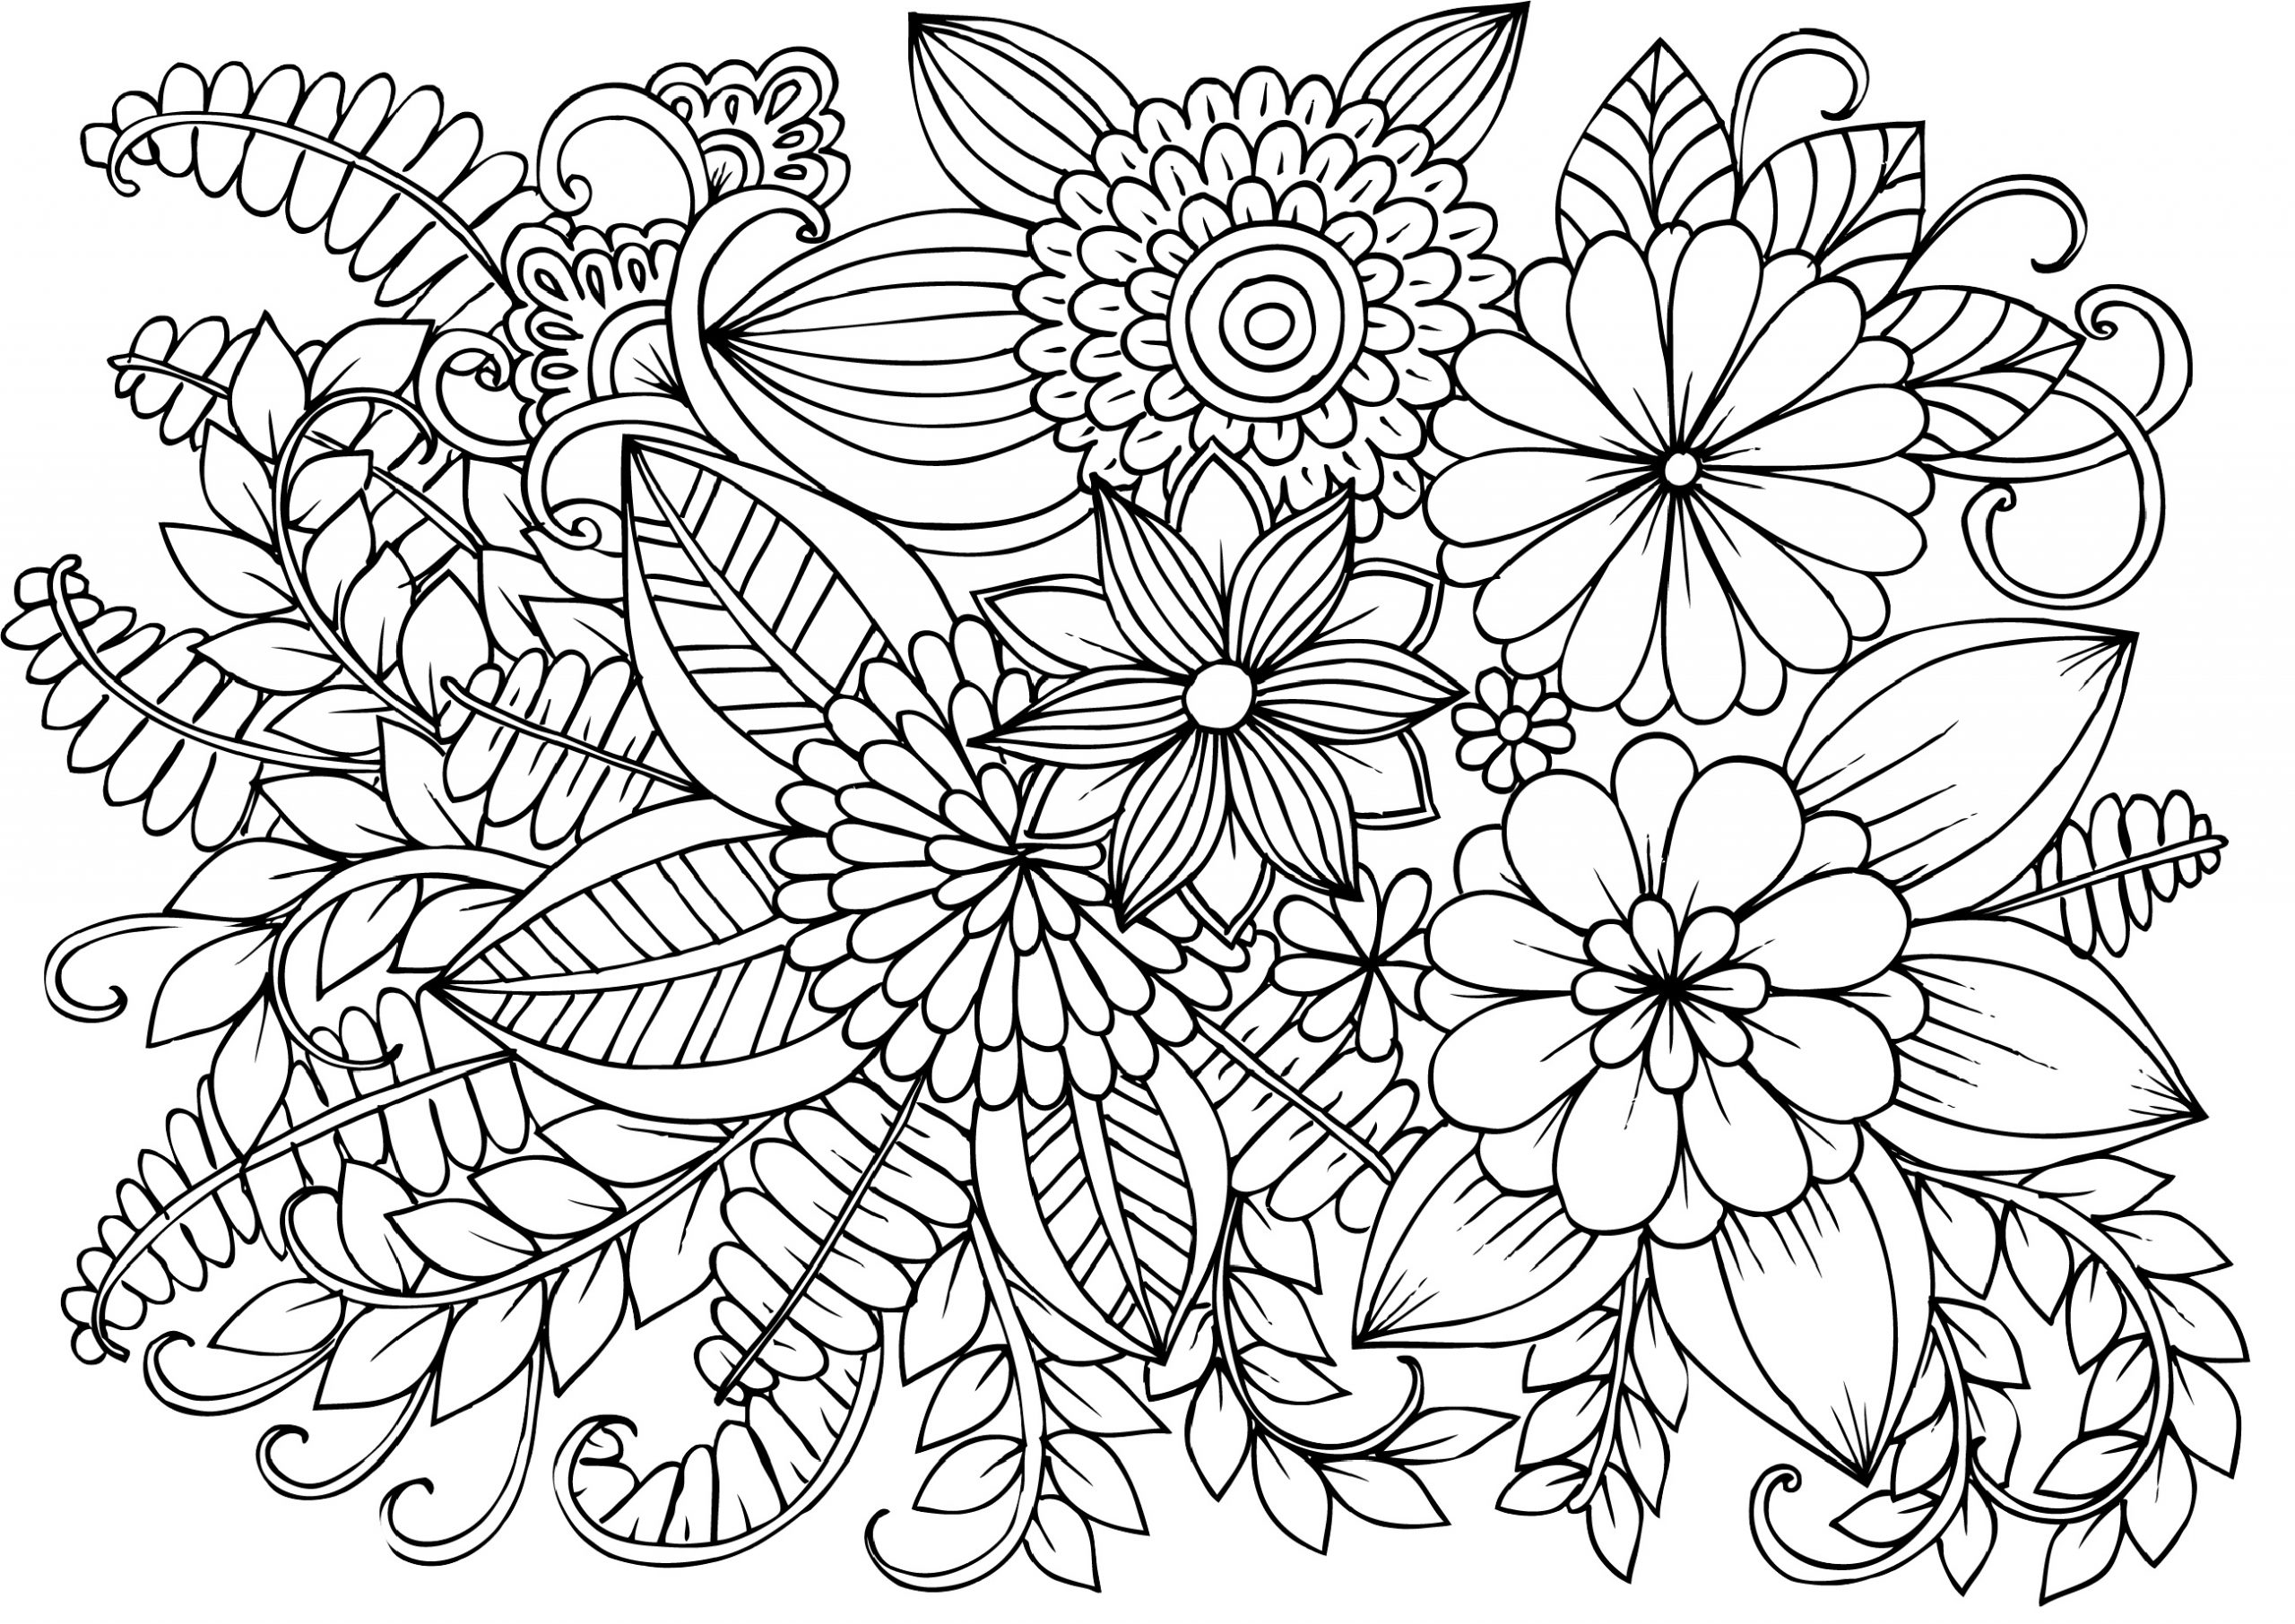 free flower coloring pages for adults realistic flowers coloring pages Рисунки цветов Рисунки for adults pages free coloring flower